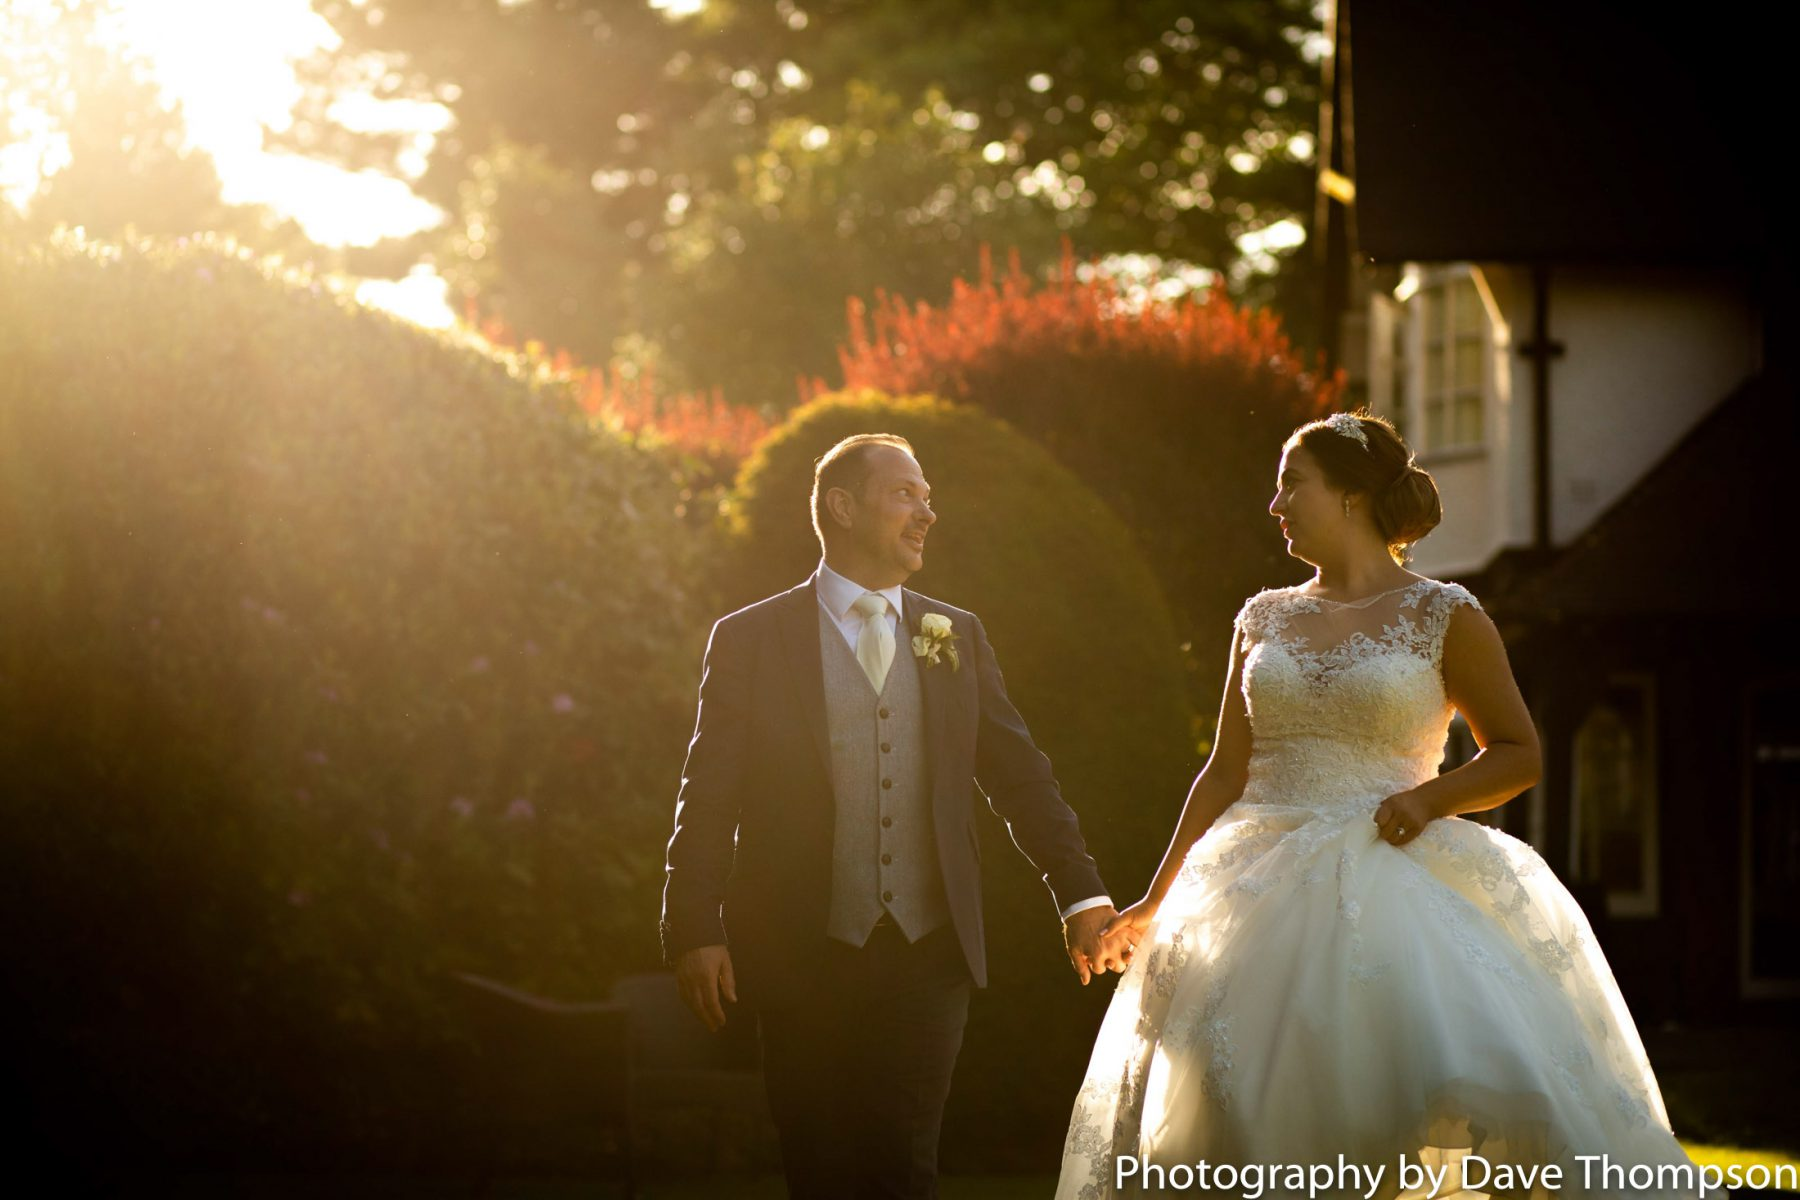 The bride and groom go for a walk in early evening sunshine